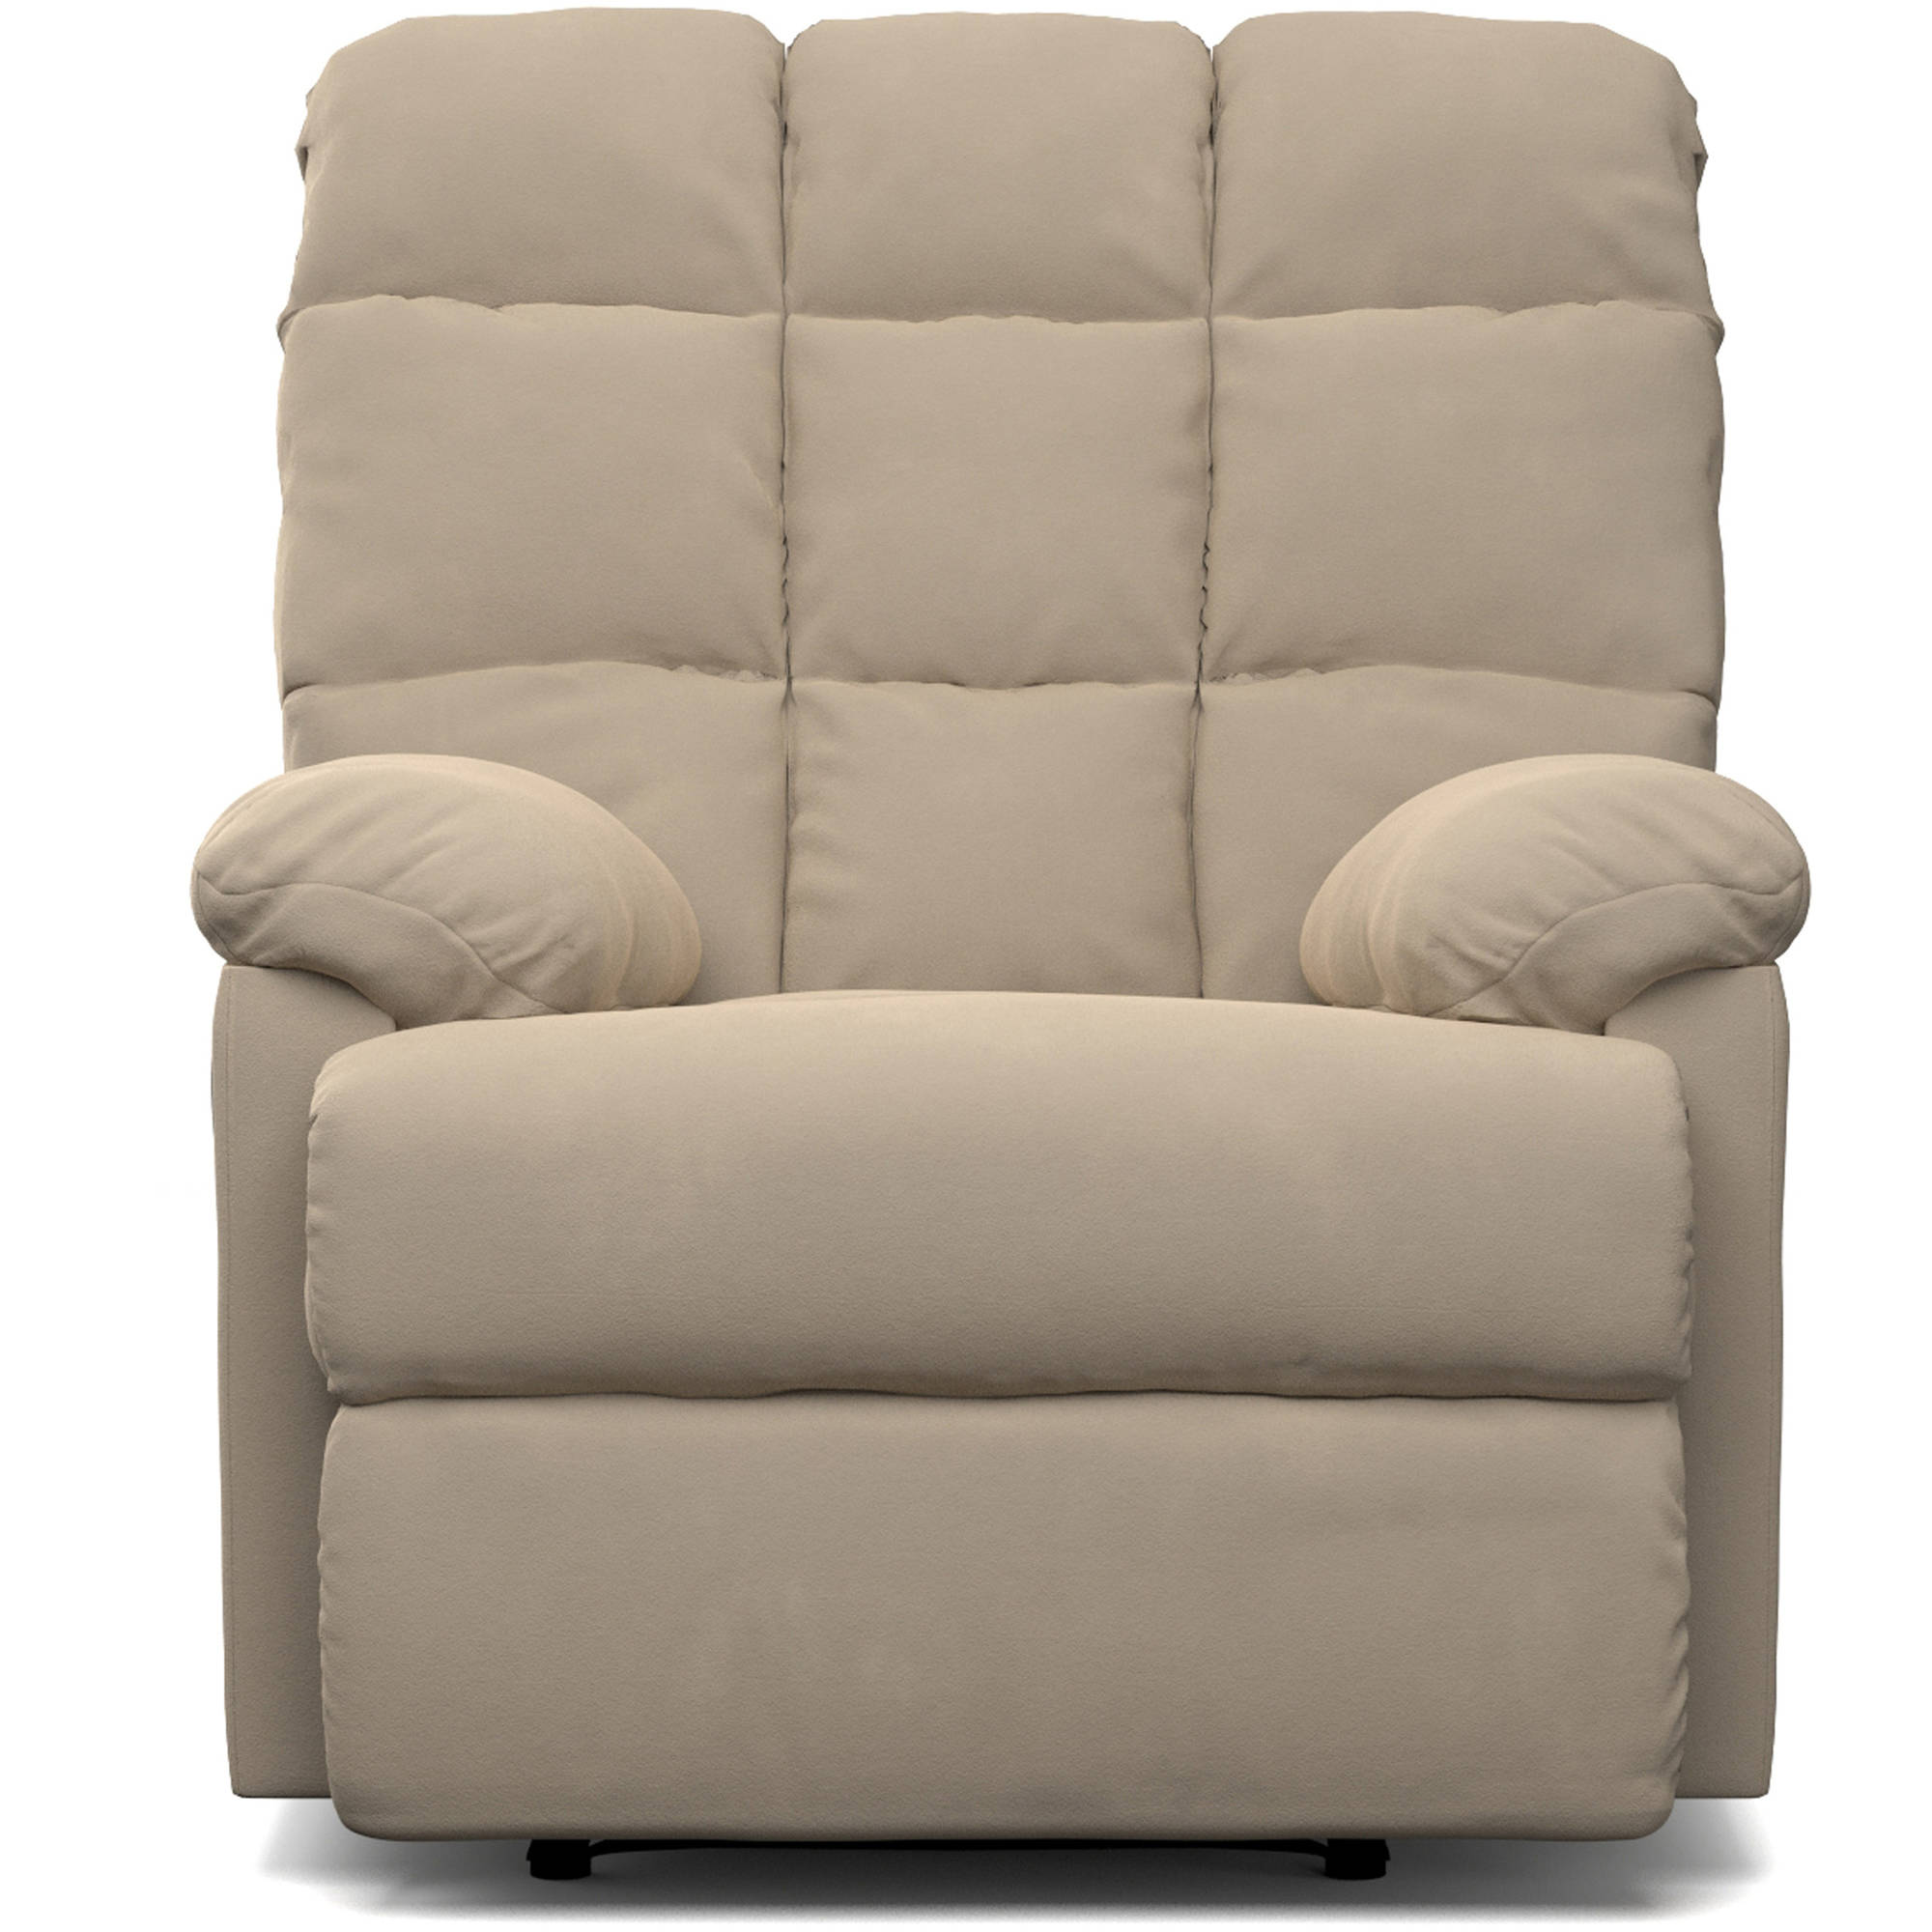 Club chair recliner - Recliner Club Chair Wall Hugger Lounge Seat Microfiber Furniture Biscuit Back